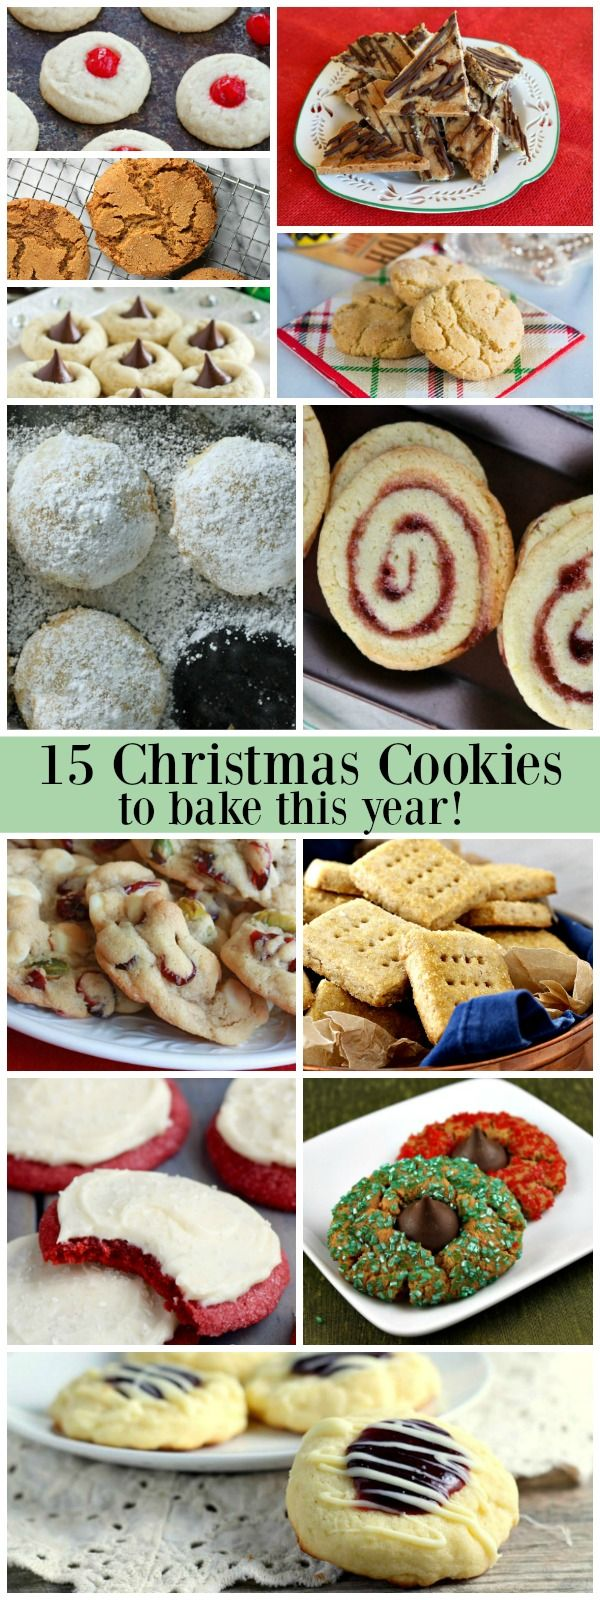 15 Christmas Cookie Recipes - find some new favorites in this collection:  Butter Dream Cookies, Eggnog Kiss Cookies, Raspberry Linzer Cookies and more!